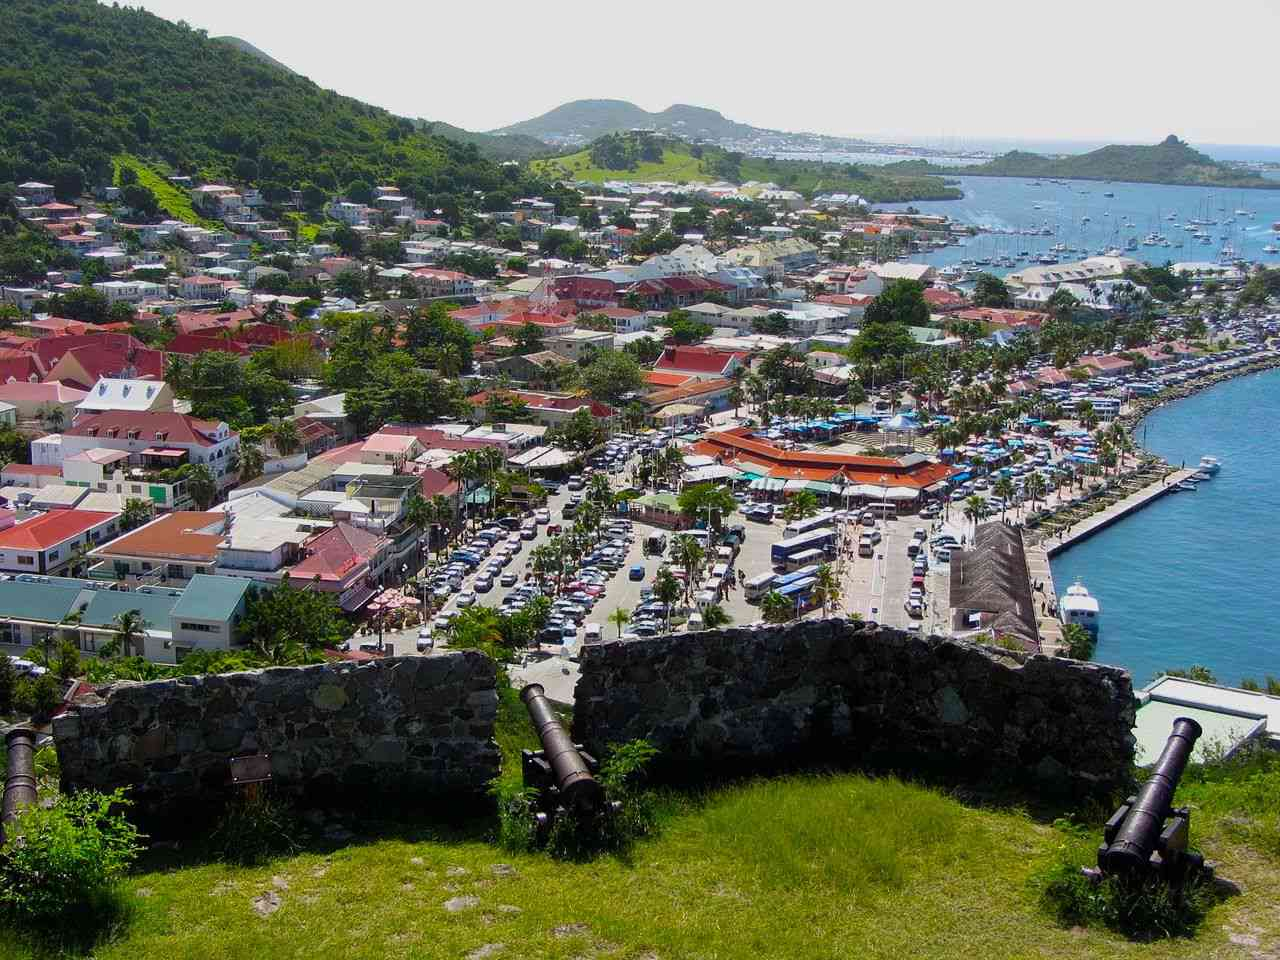 Fort Louis and Marigot, St. Martin